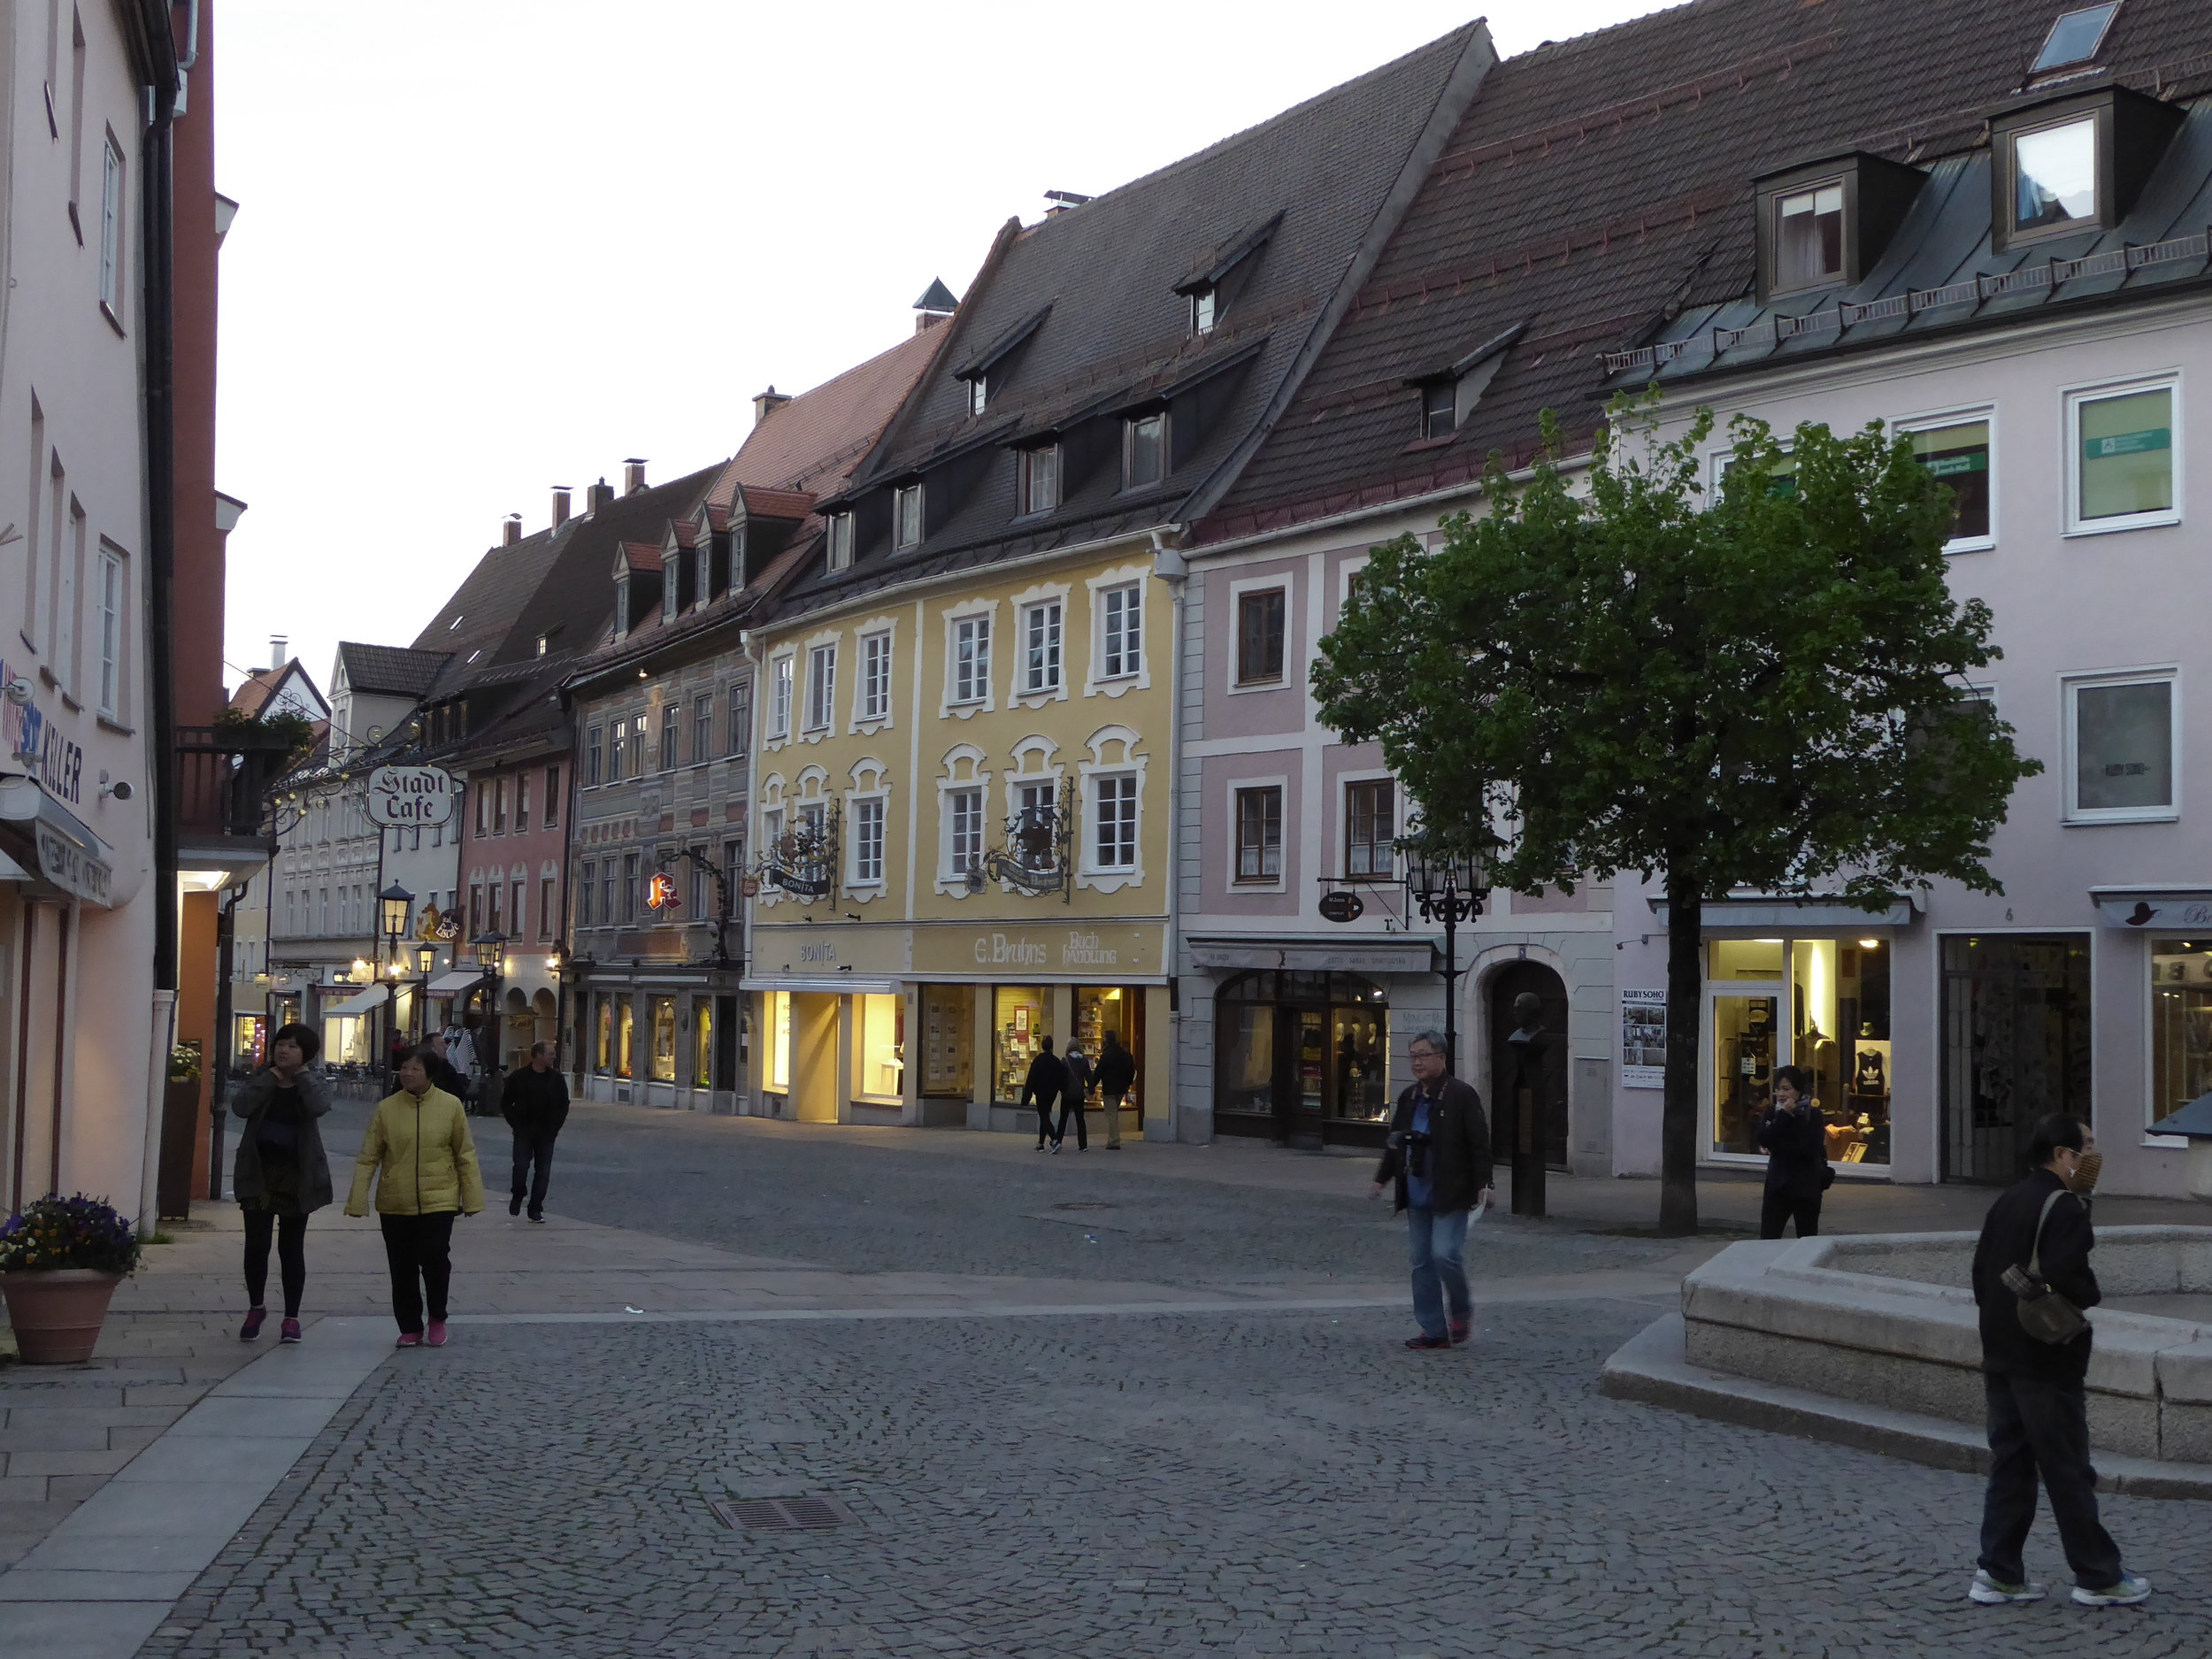 Füssen at dusk. A much quieter town after the big cites we have been visiting.